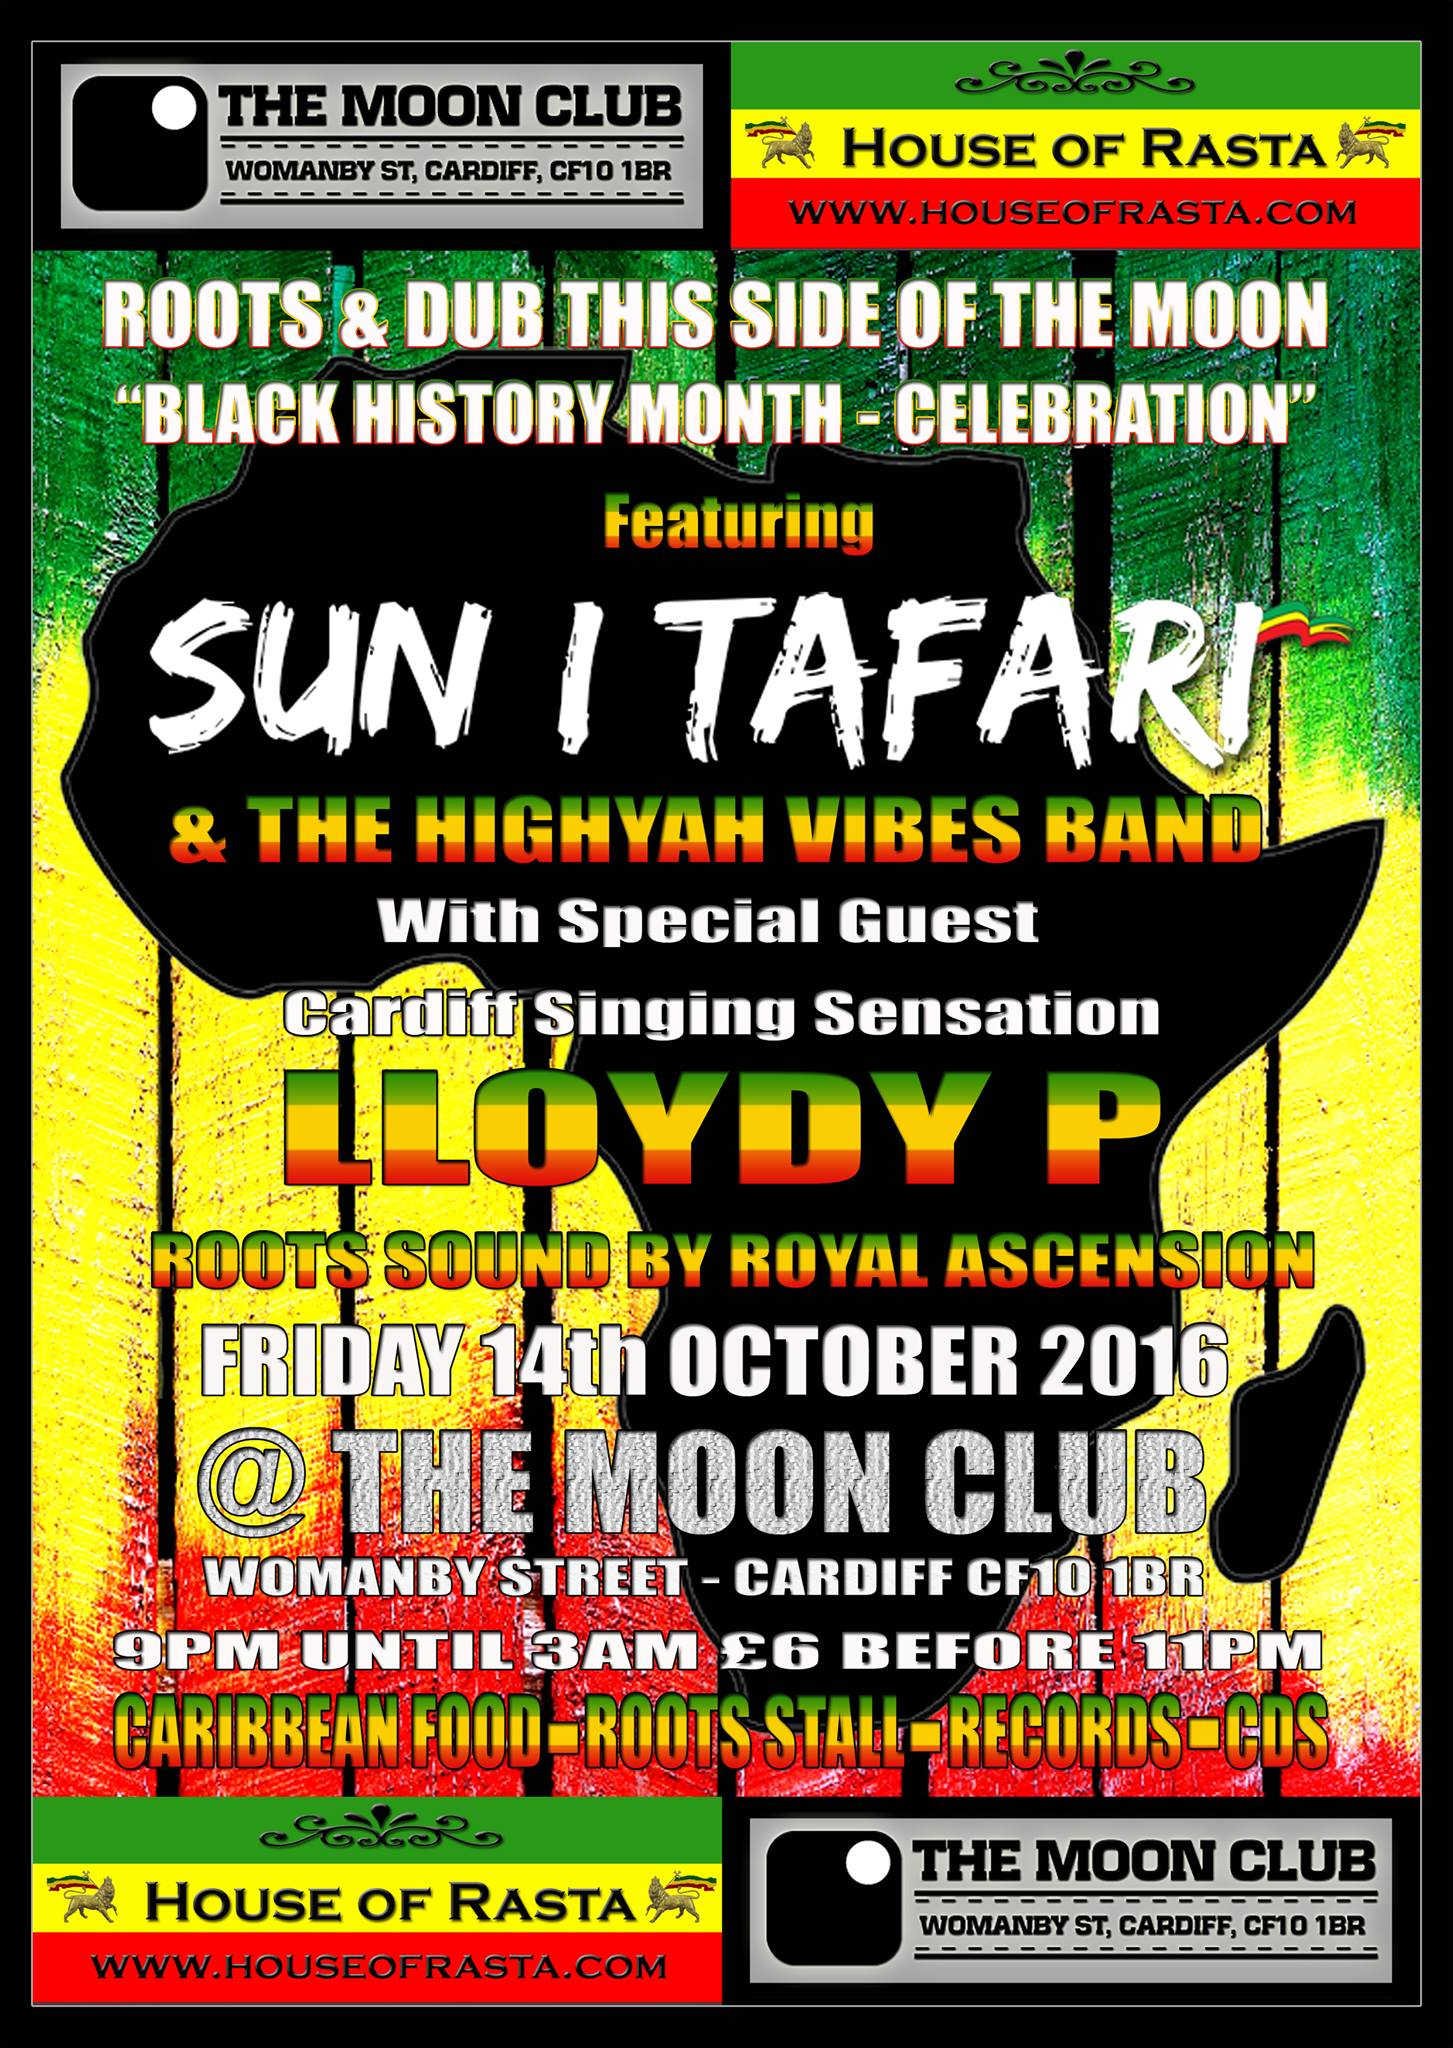 Sun I Tafari Black History Month